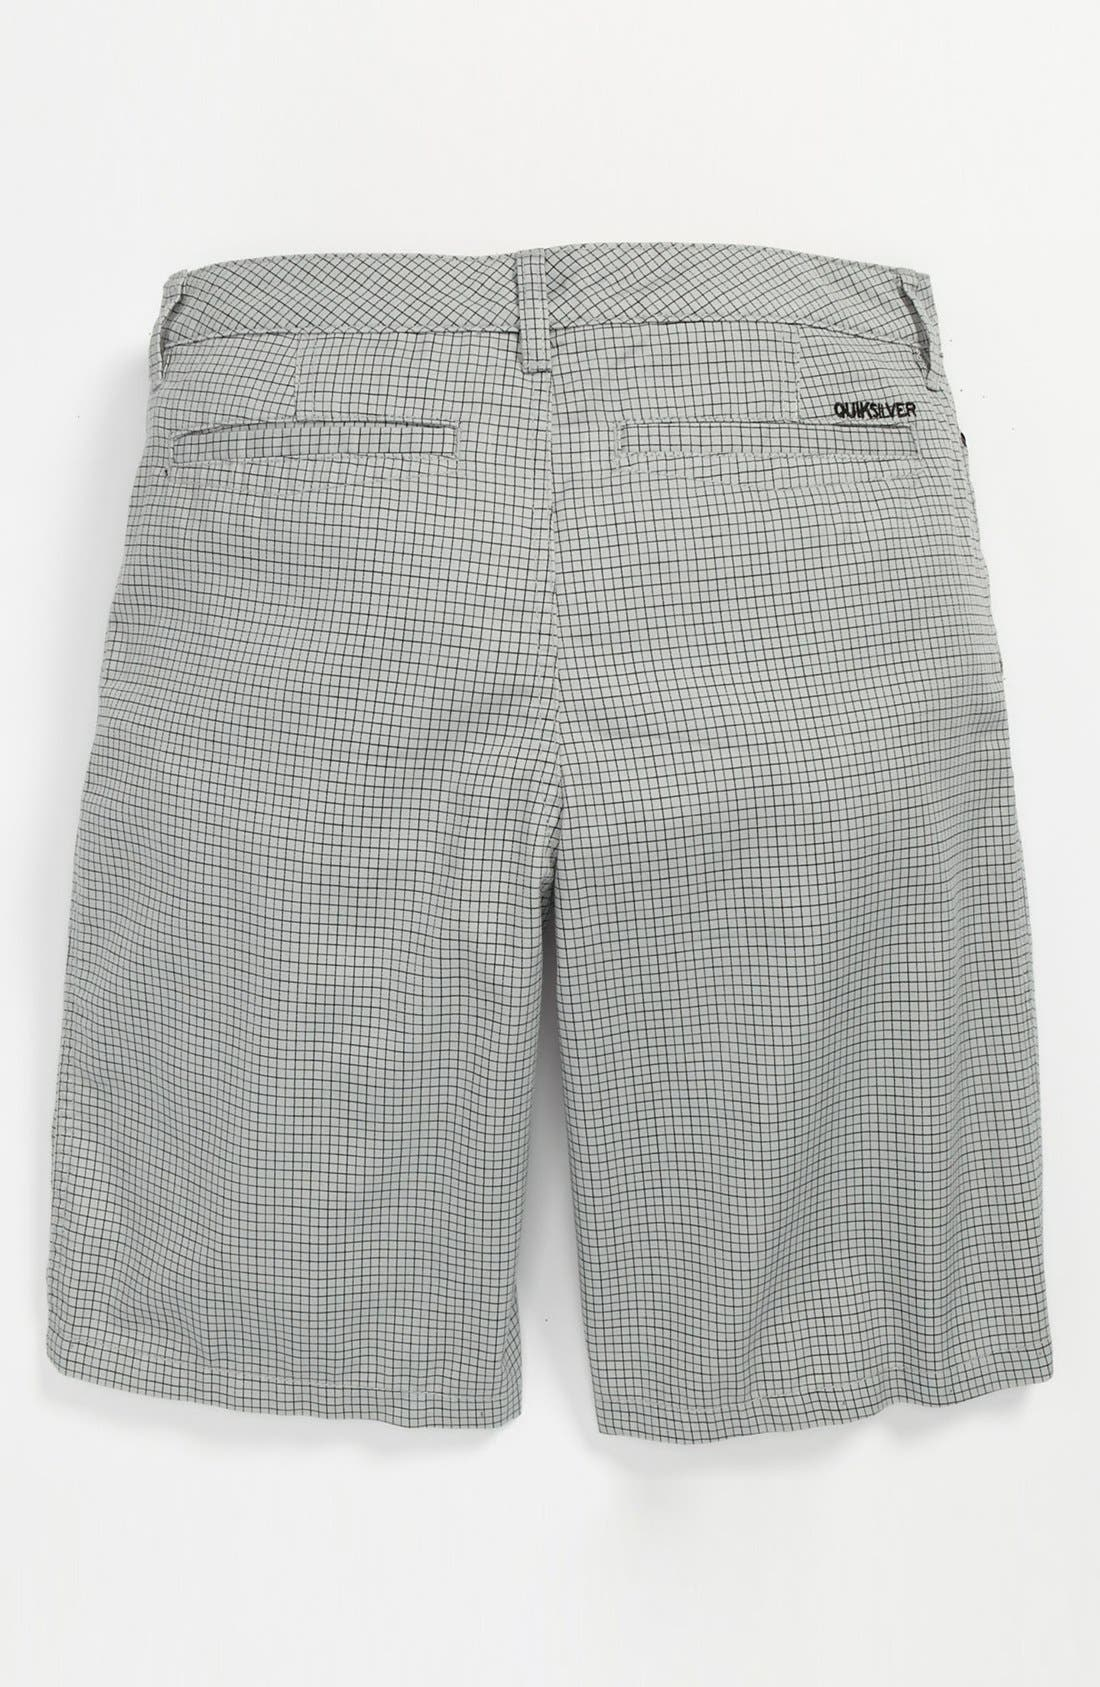 Alternate Image 2  - Quiksilver 'All In' Shorts (Little Boys)